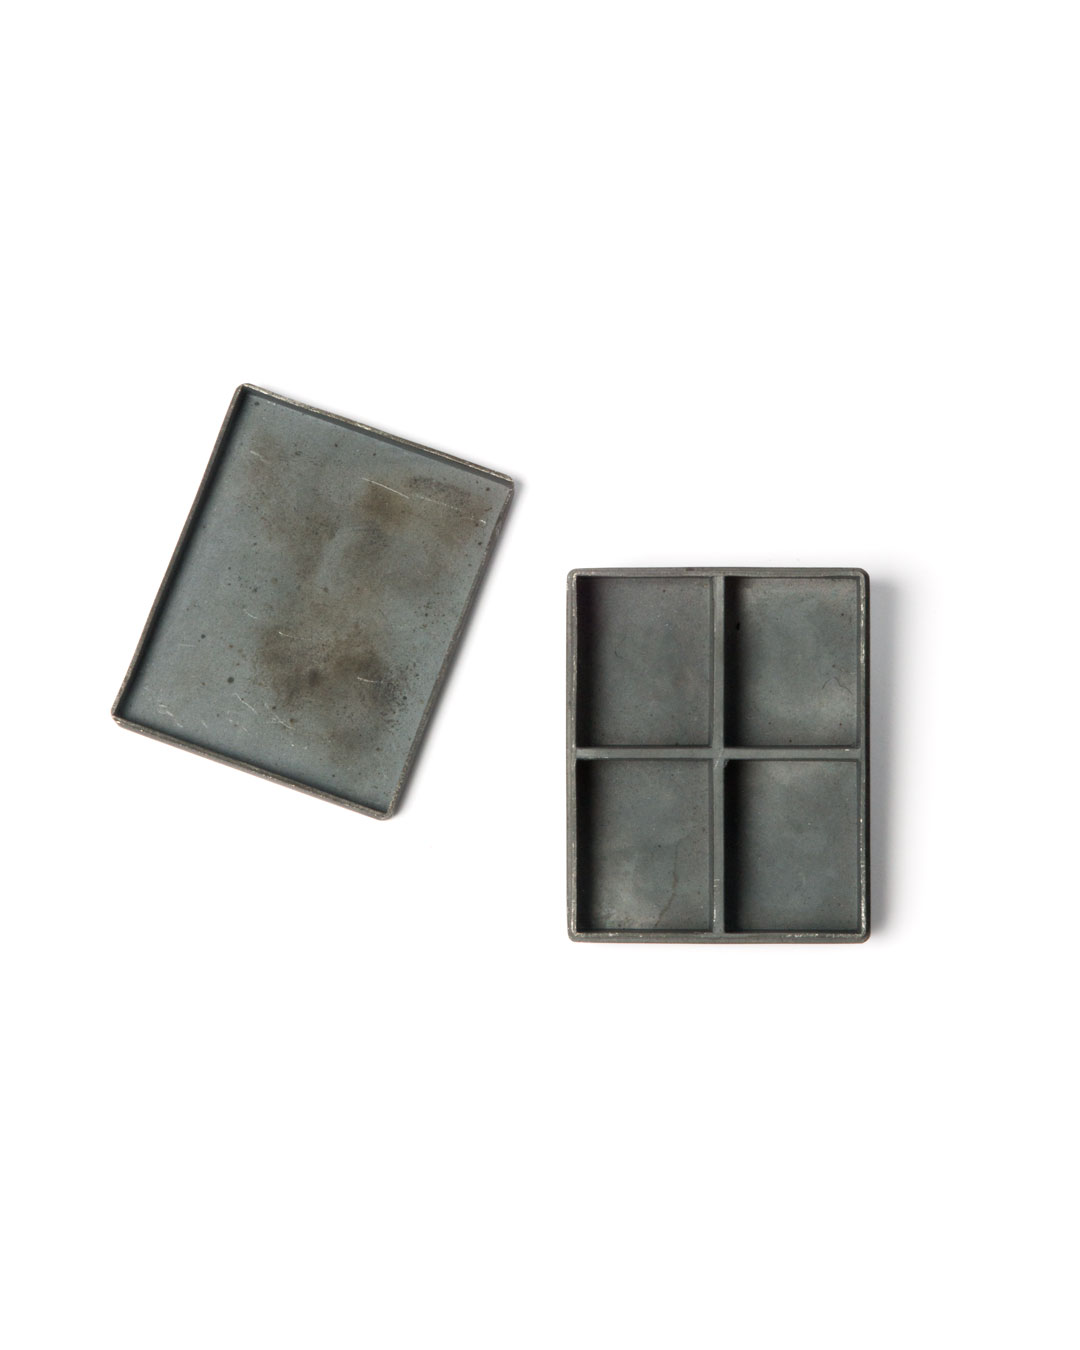 Winfried Krüger, untitled, 2008, brooch; oxidised silver, 50 x 45 mm, €1455